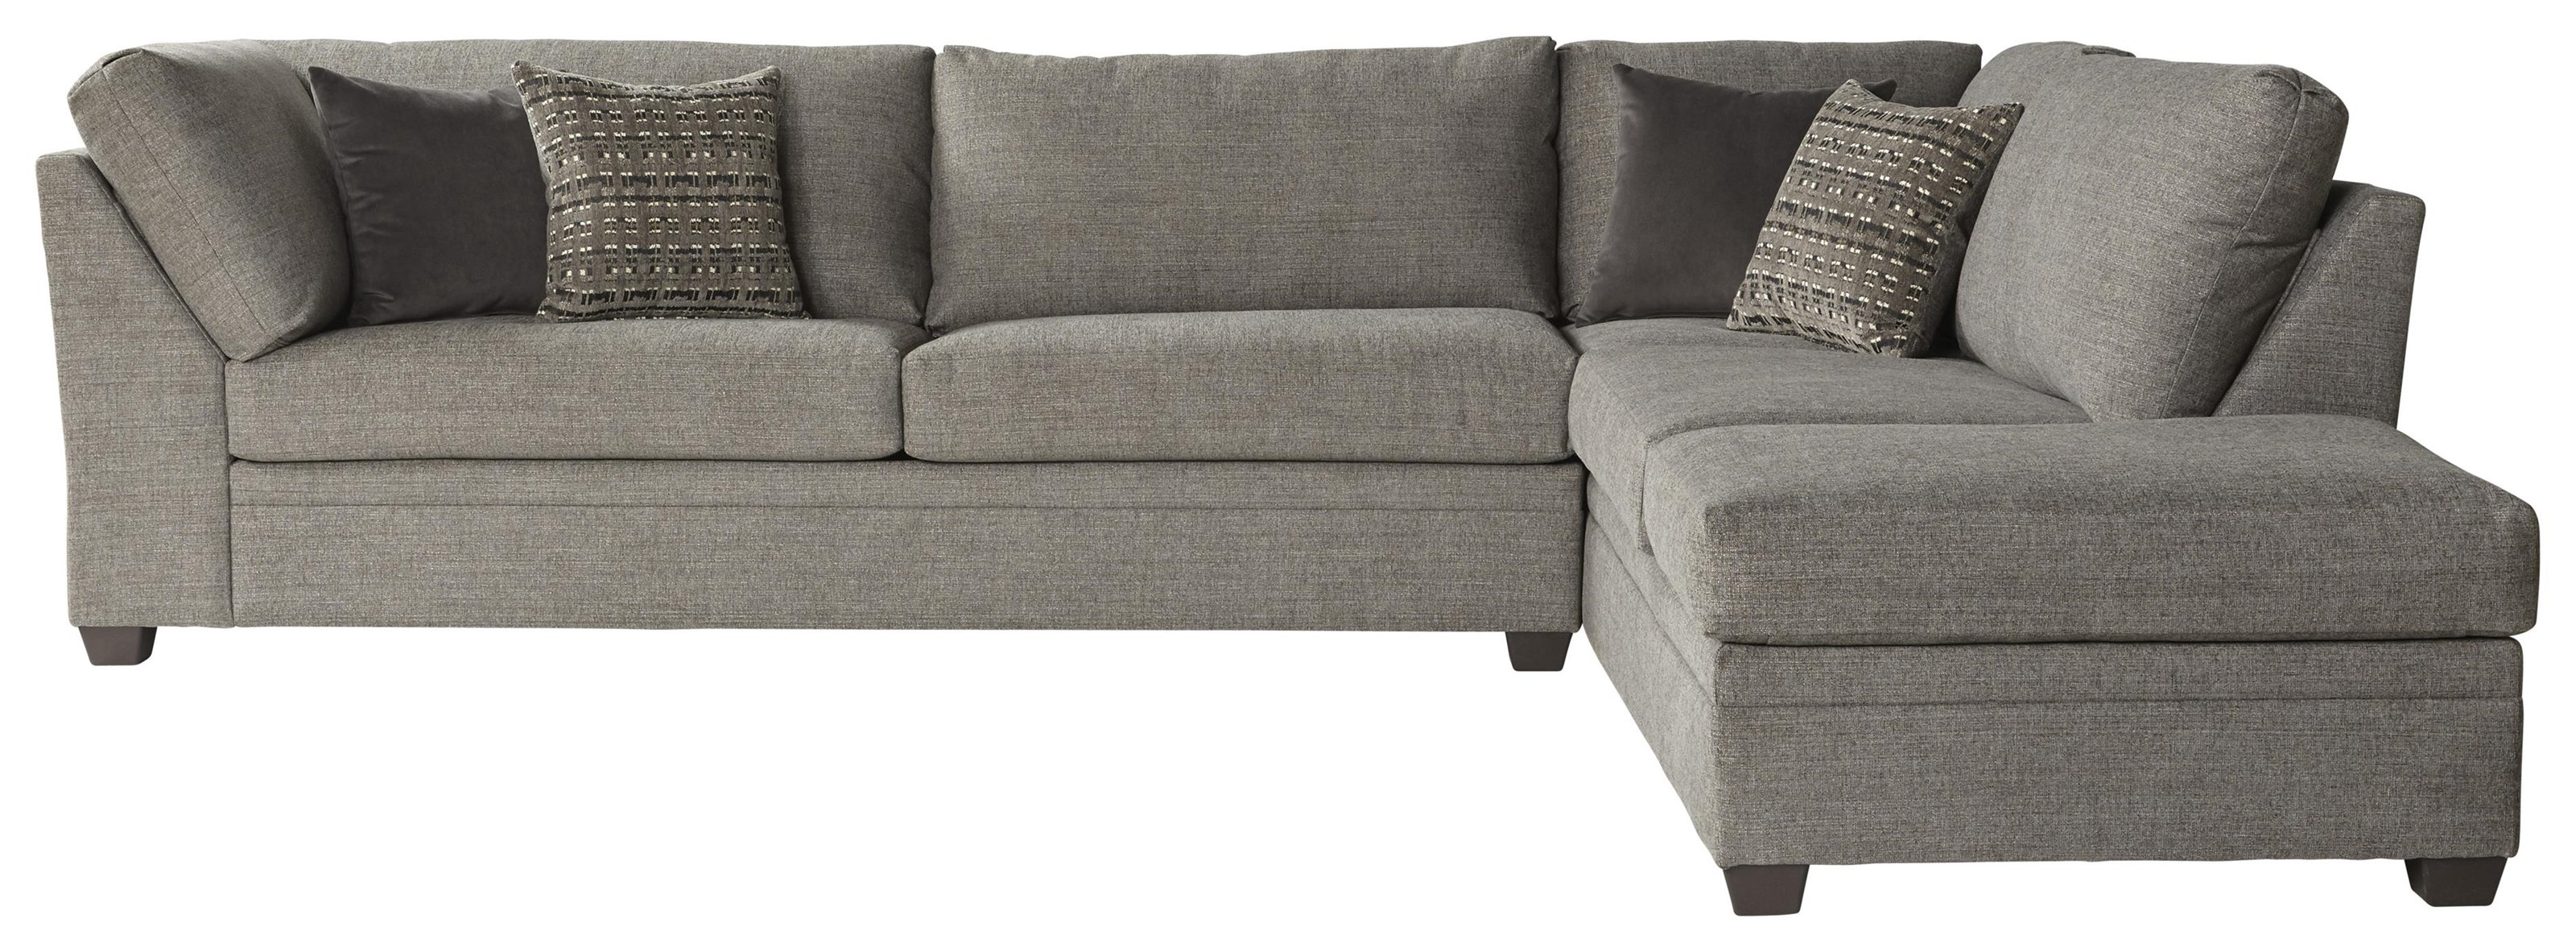 14500 2 piece sectional